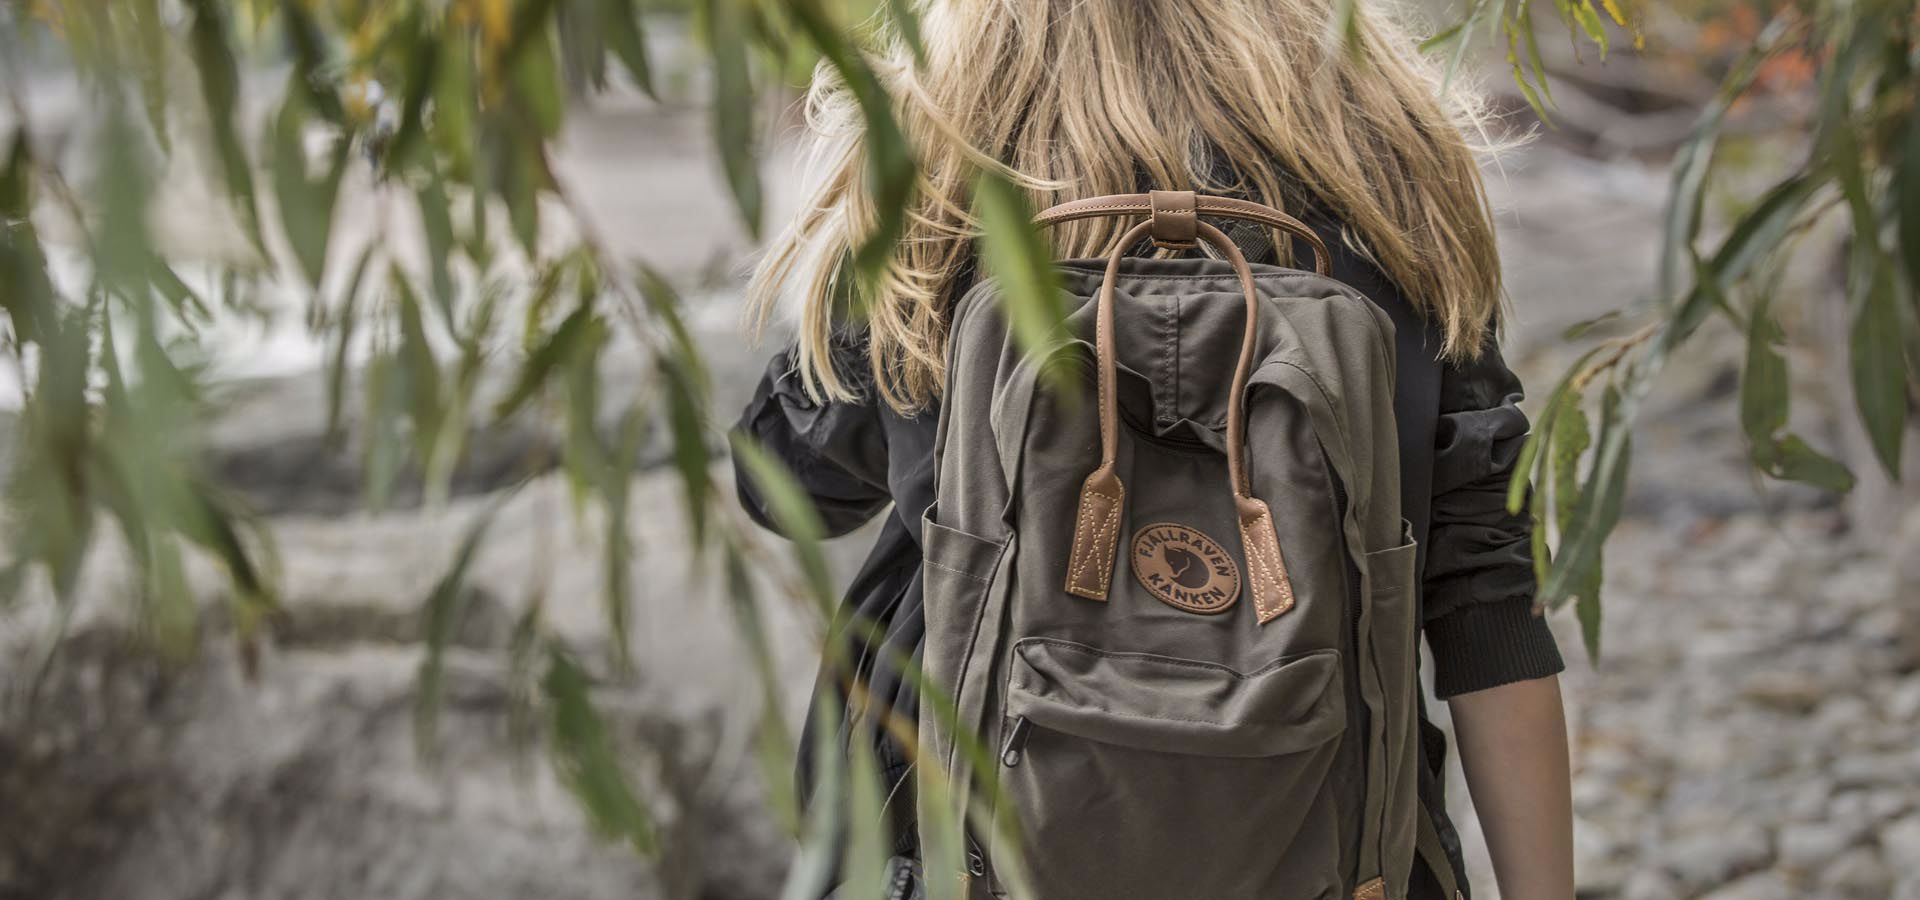 Backpacking for women: Multifunction keeps it light